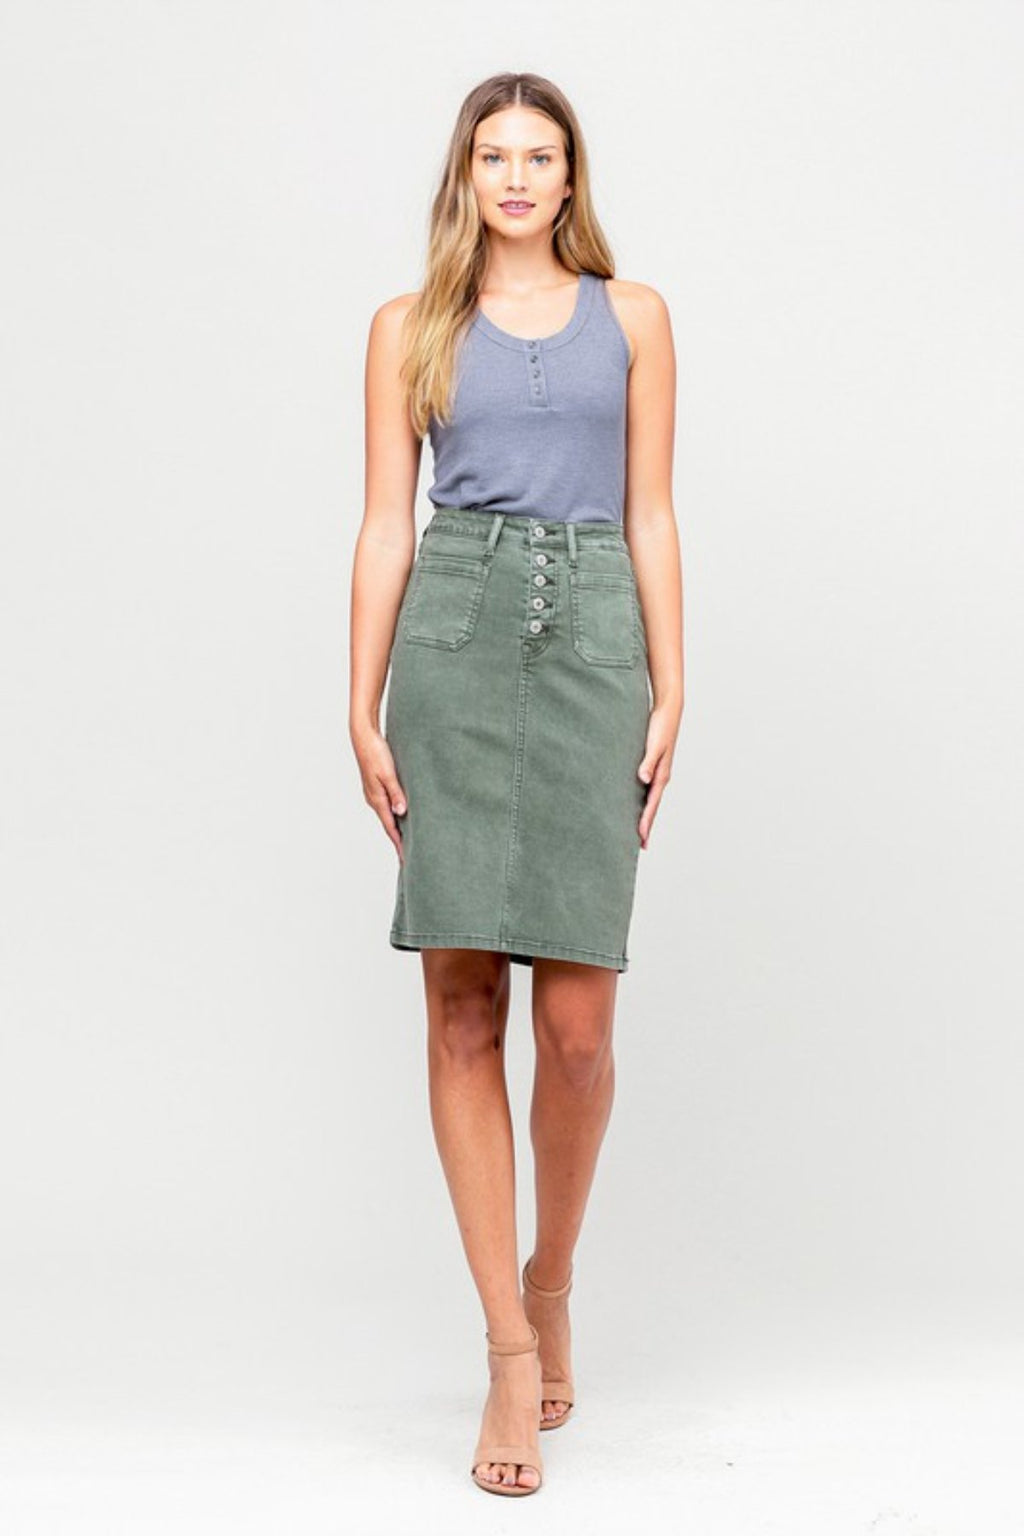 CLAUDIA BUTTON ME UP OLIVE DENIM MIDI SKIRT - [jayden_p]